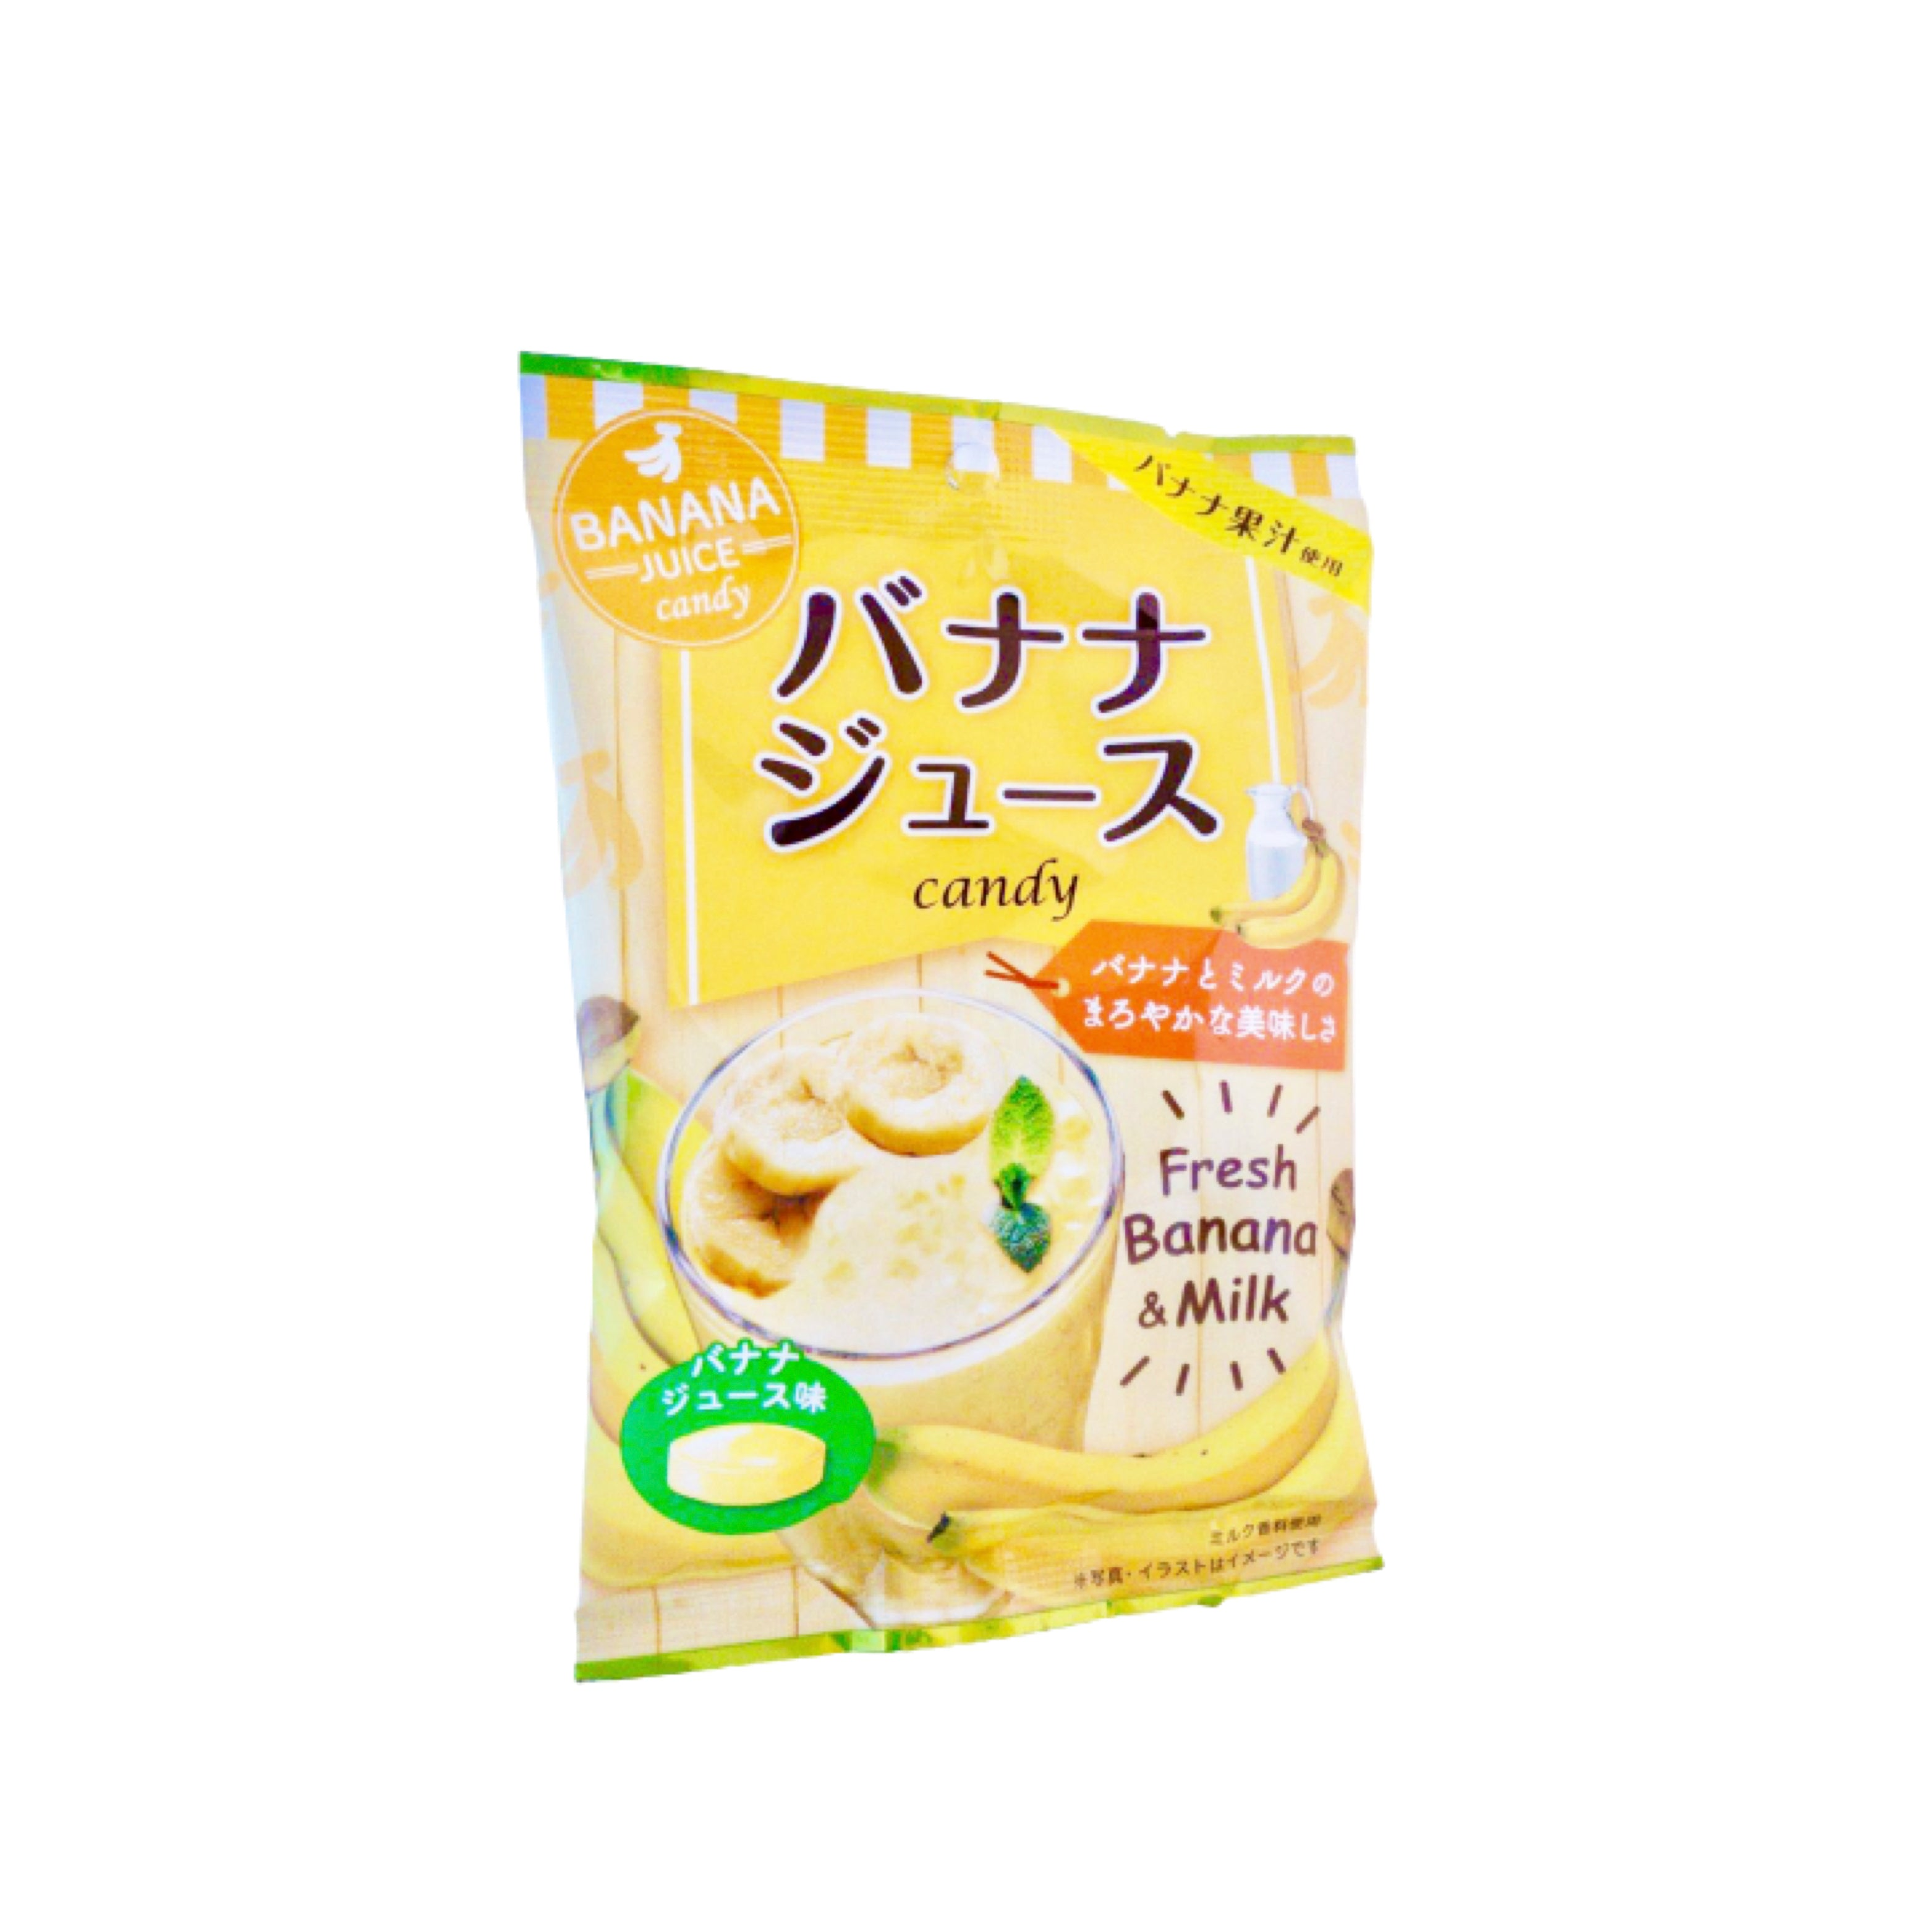 Banana Juice Candy (Fresh Banana& Milk) 2.32oz